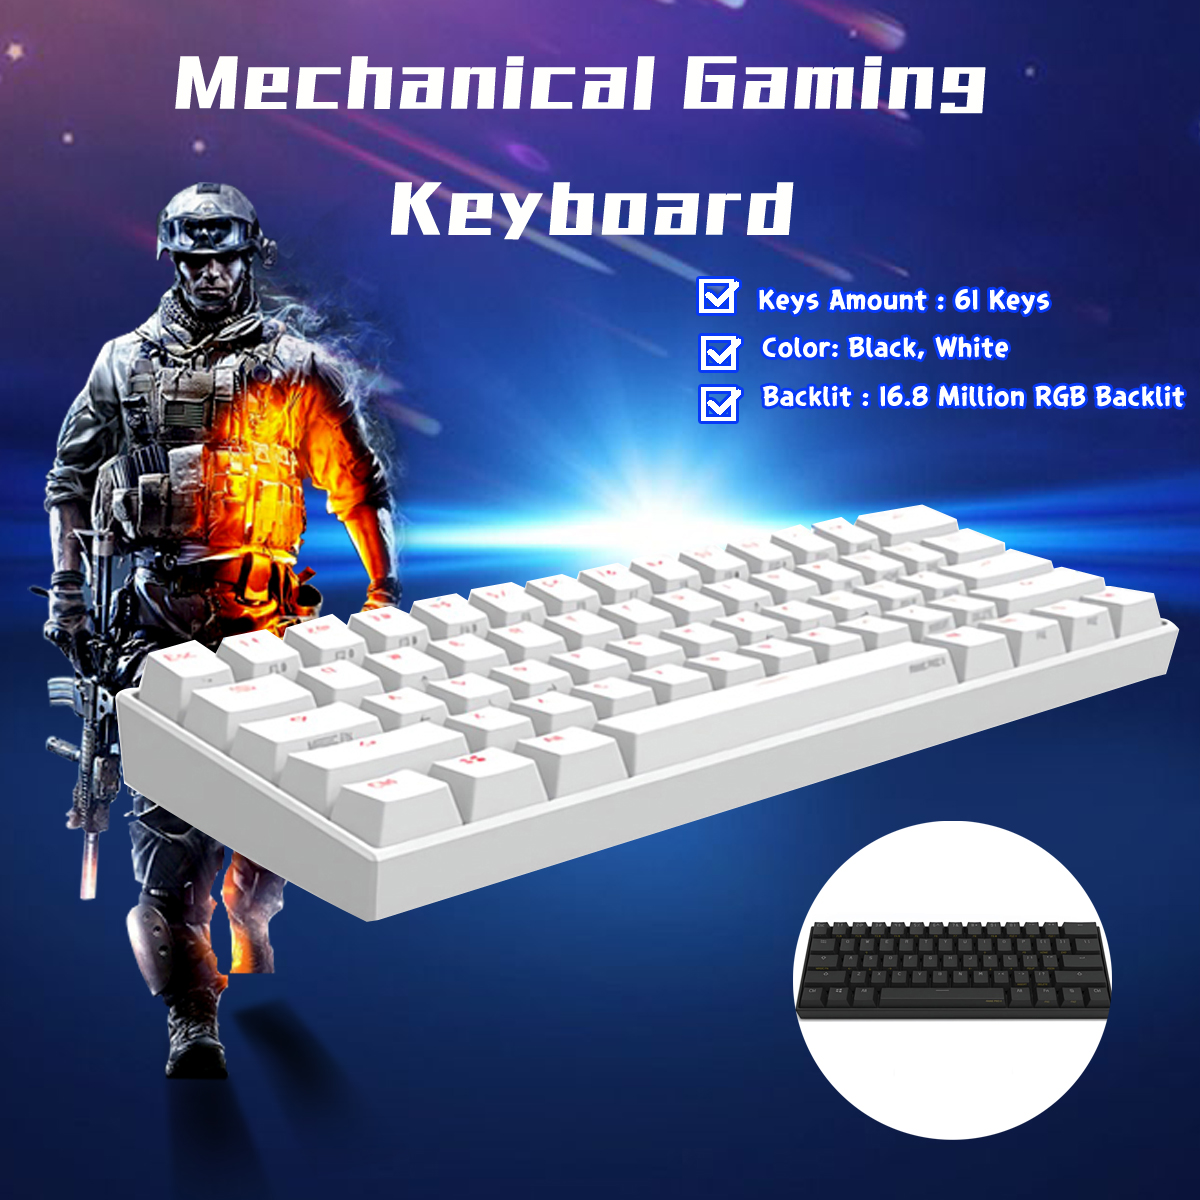 [Kailh BOX Switch]Obins Anne Pro 2 60% NKRO bluetooth 4.0 Type-C RGB Mechanical Gaming Keyboard[Kailh BOX Switch]Obins Anne Pro 2 60% NKRO bluetooth 4.0 Type-C RGB Mechanical Gaming Keyboard